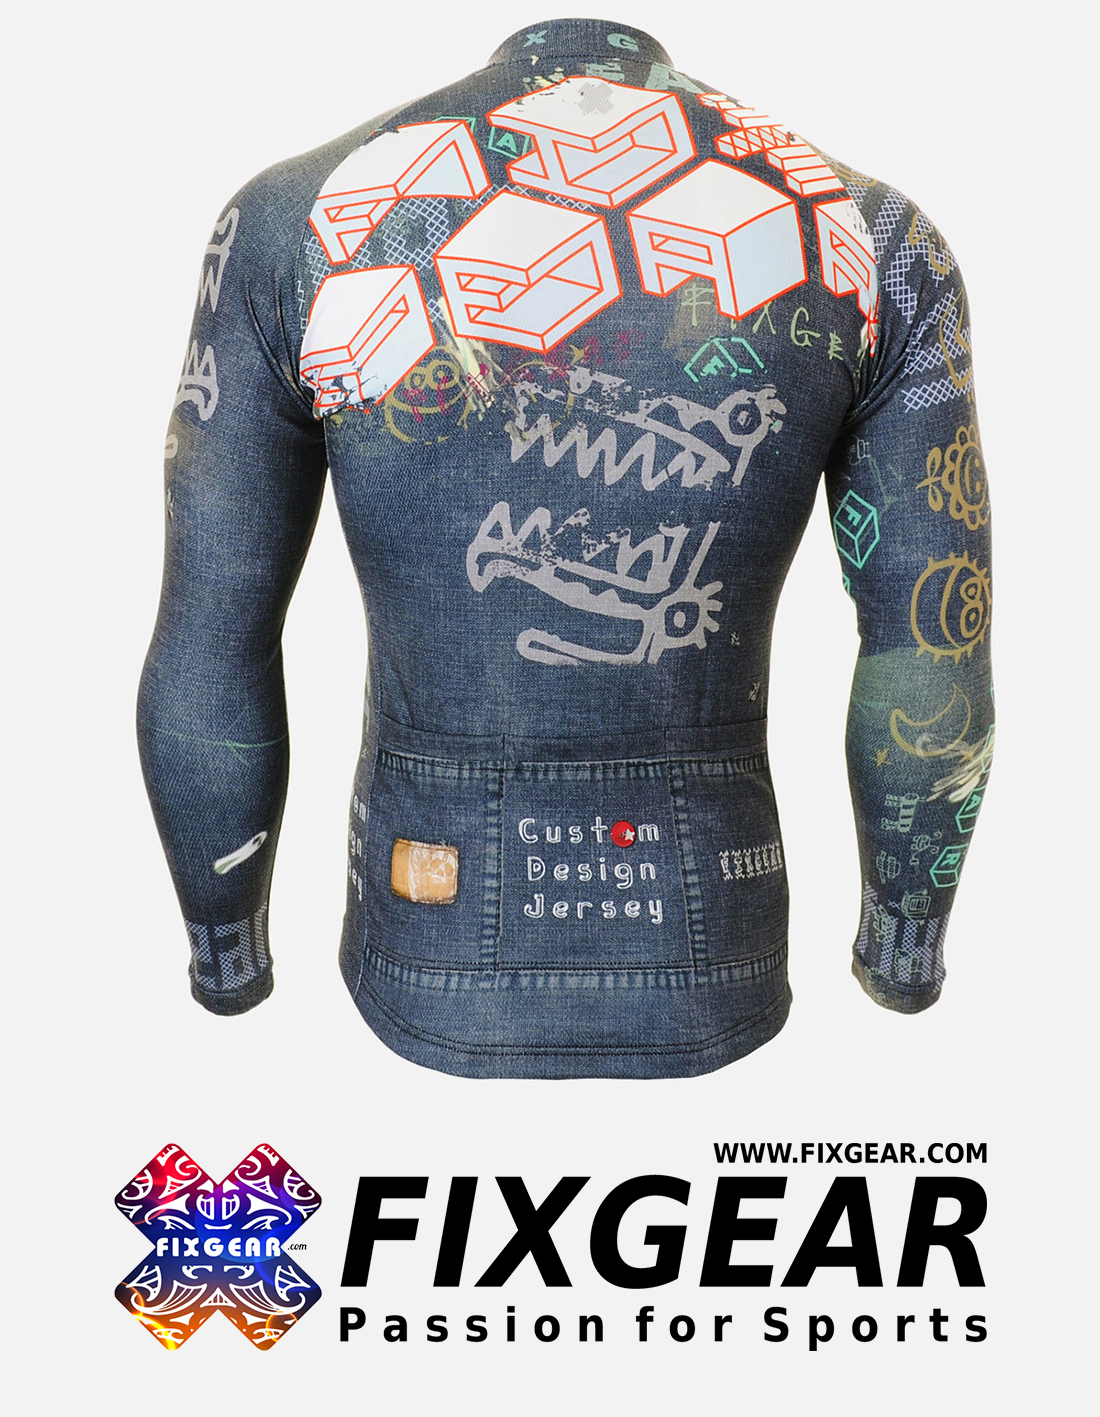 FIXGEAR CS-1501 Men's Cycling  Jersey Long Sleeve